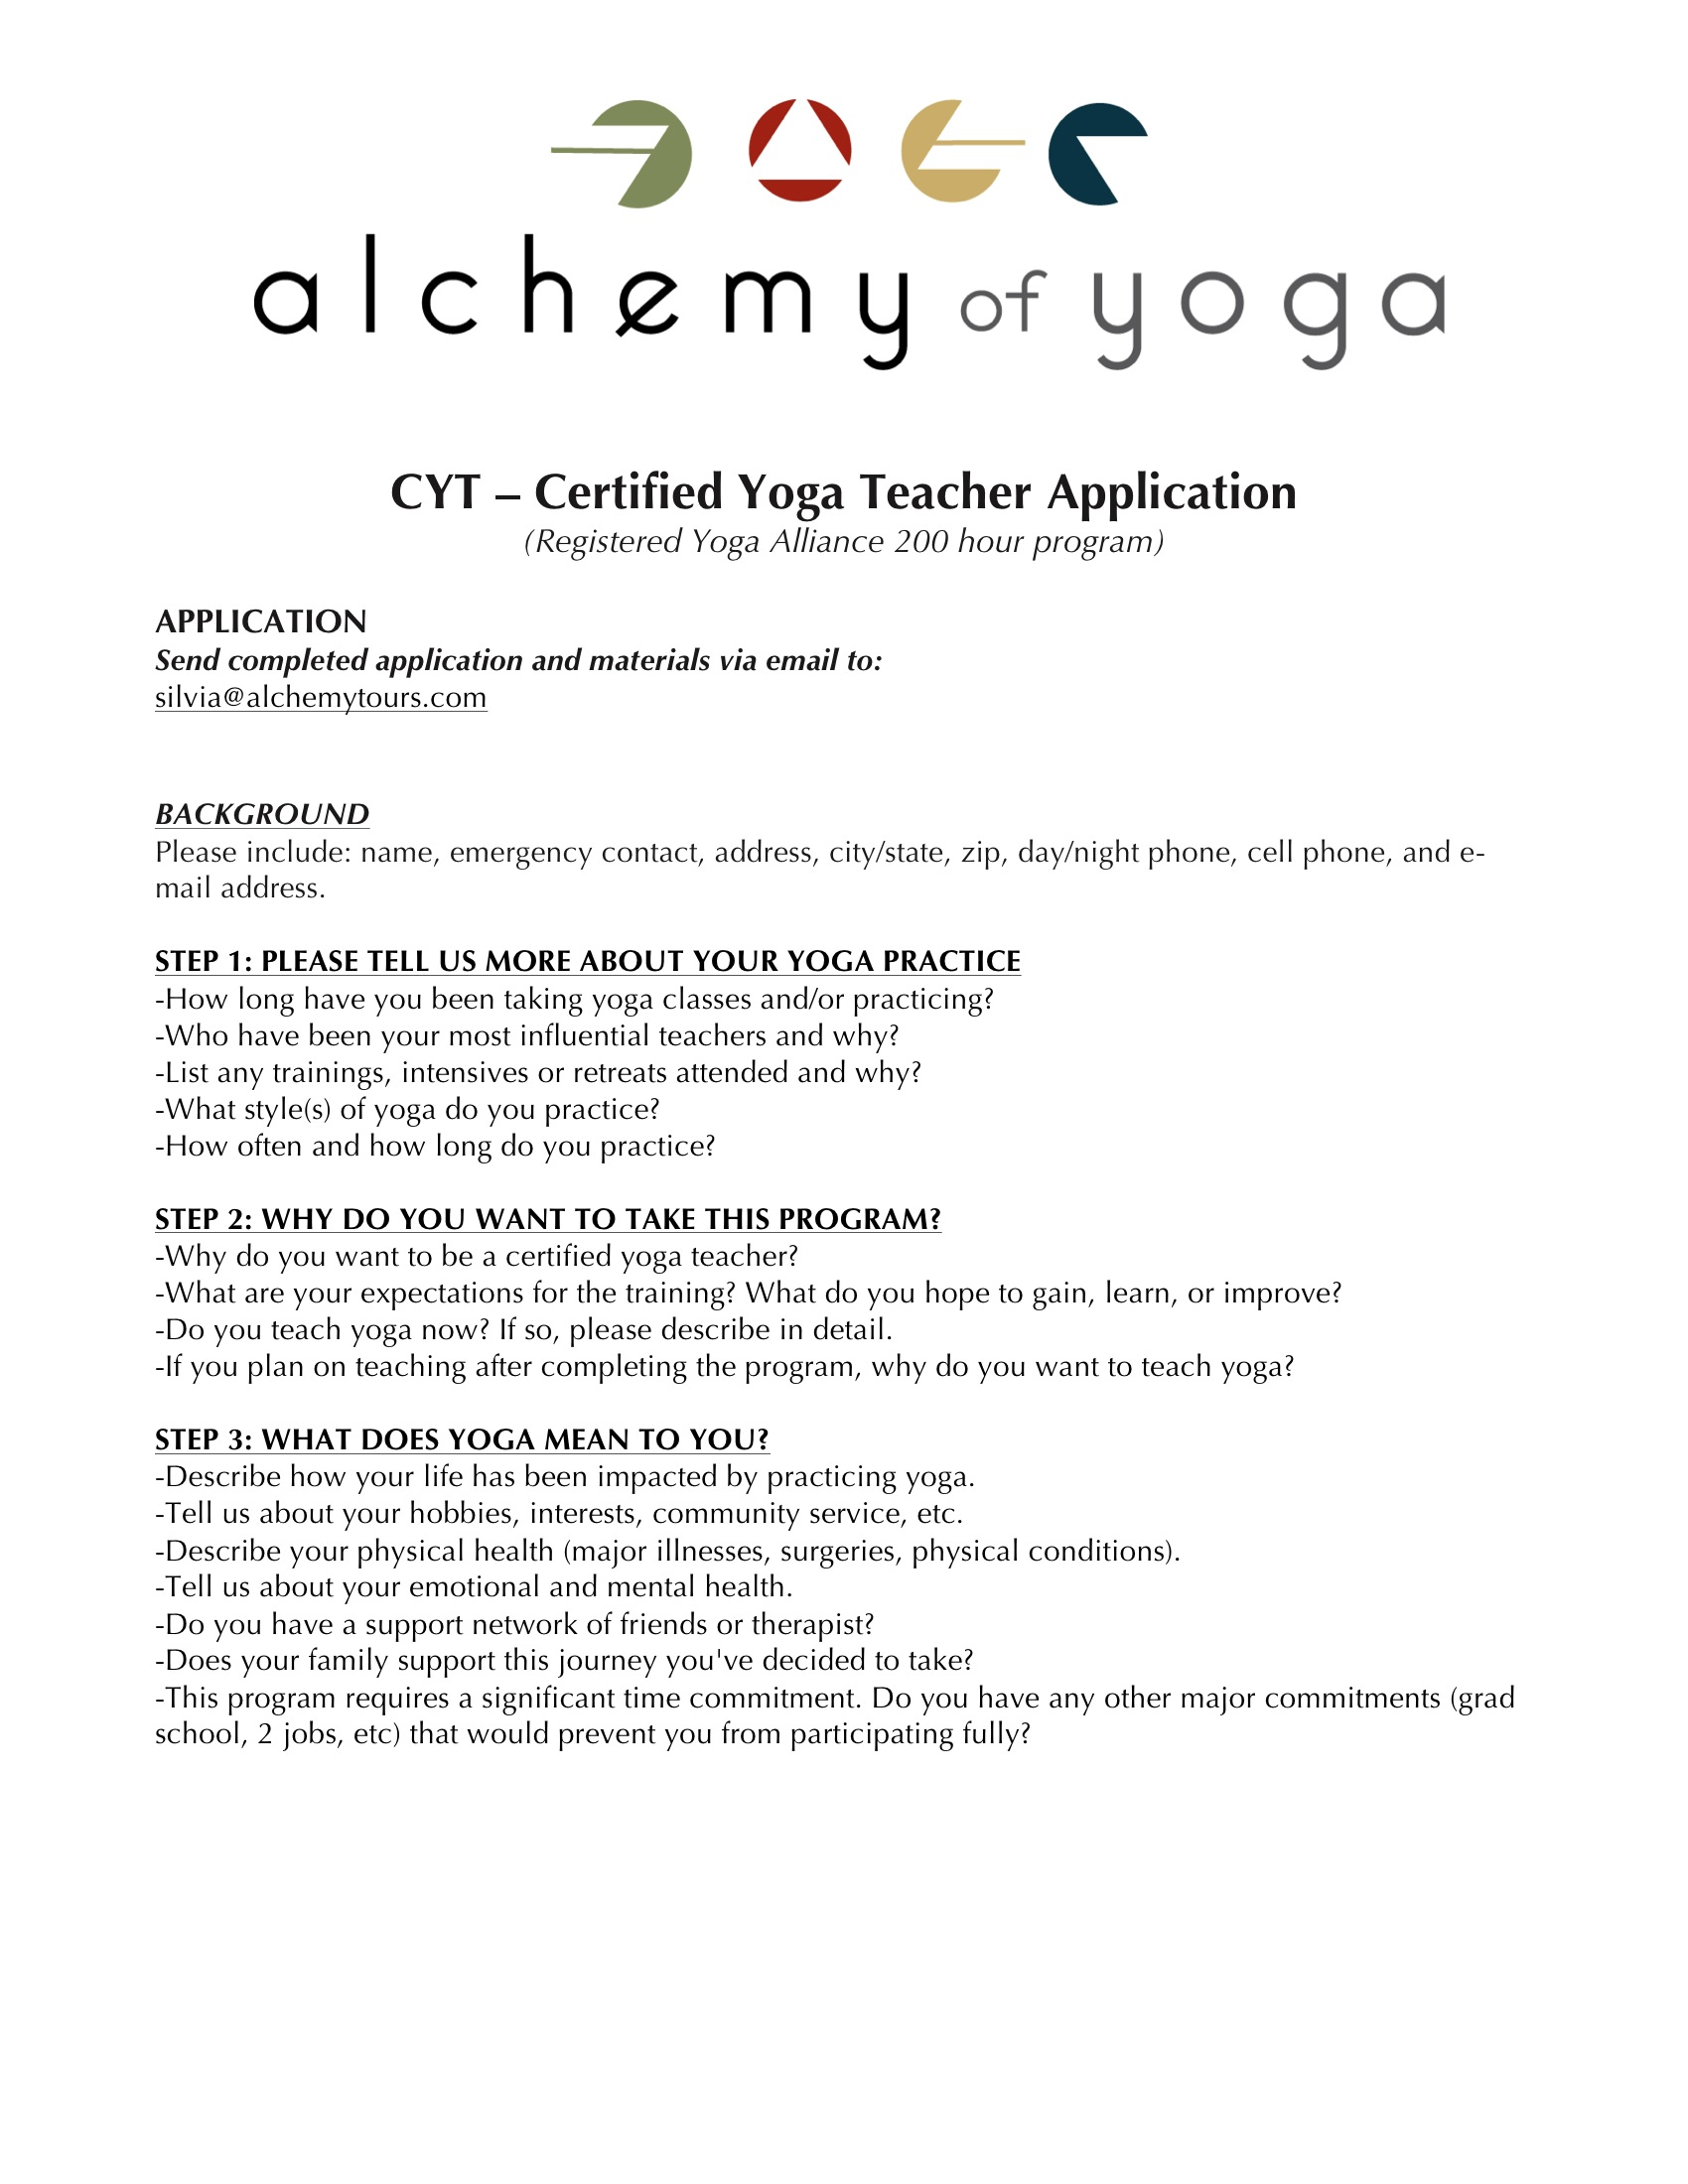 applicationalchemyofyoga